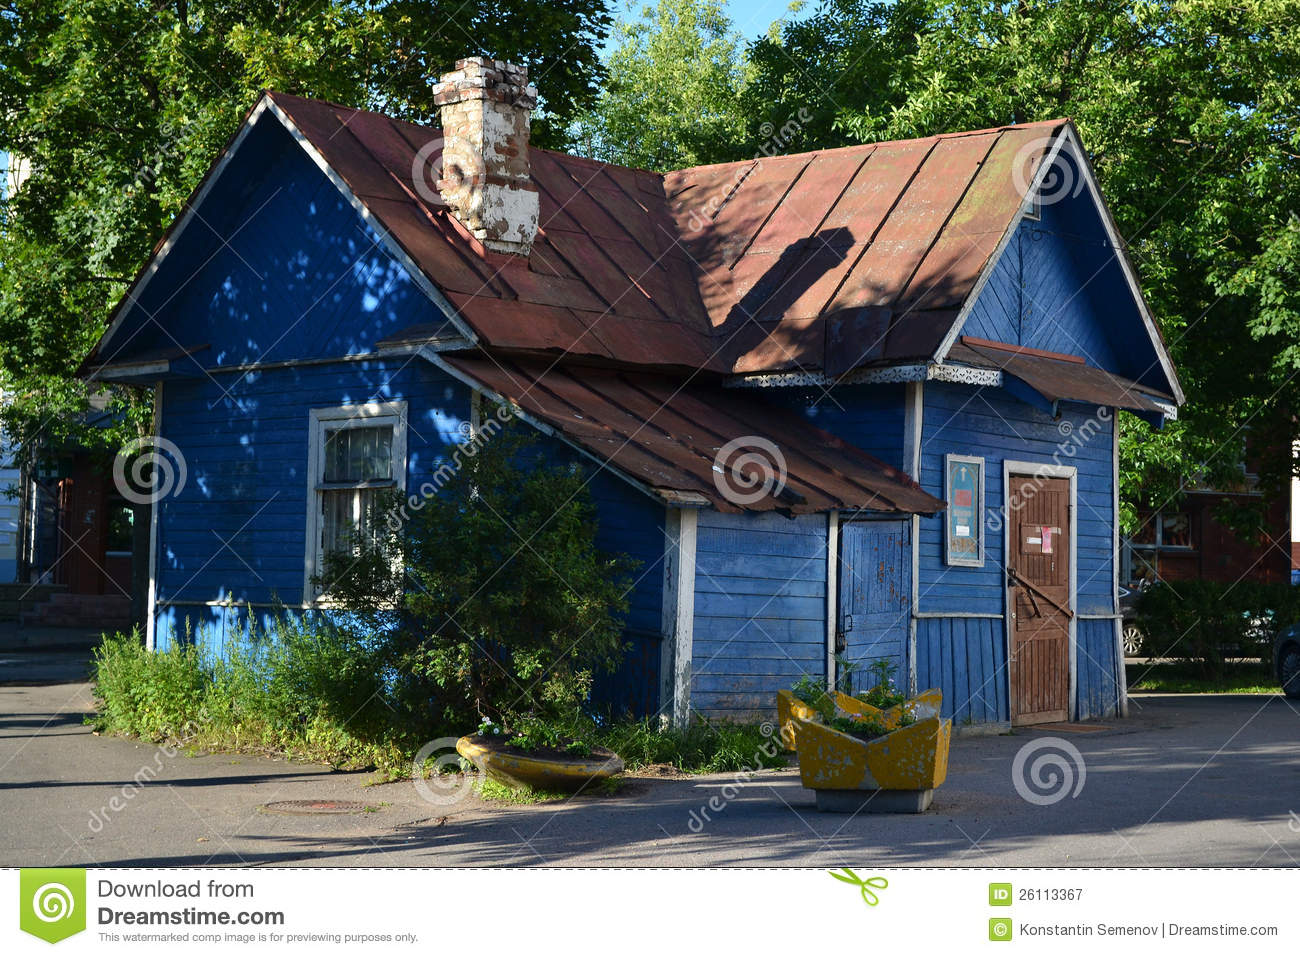 Old small country wooden house royalty free stock photography image 26113367 - Wooden dream houses ...